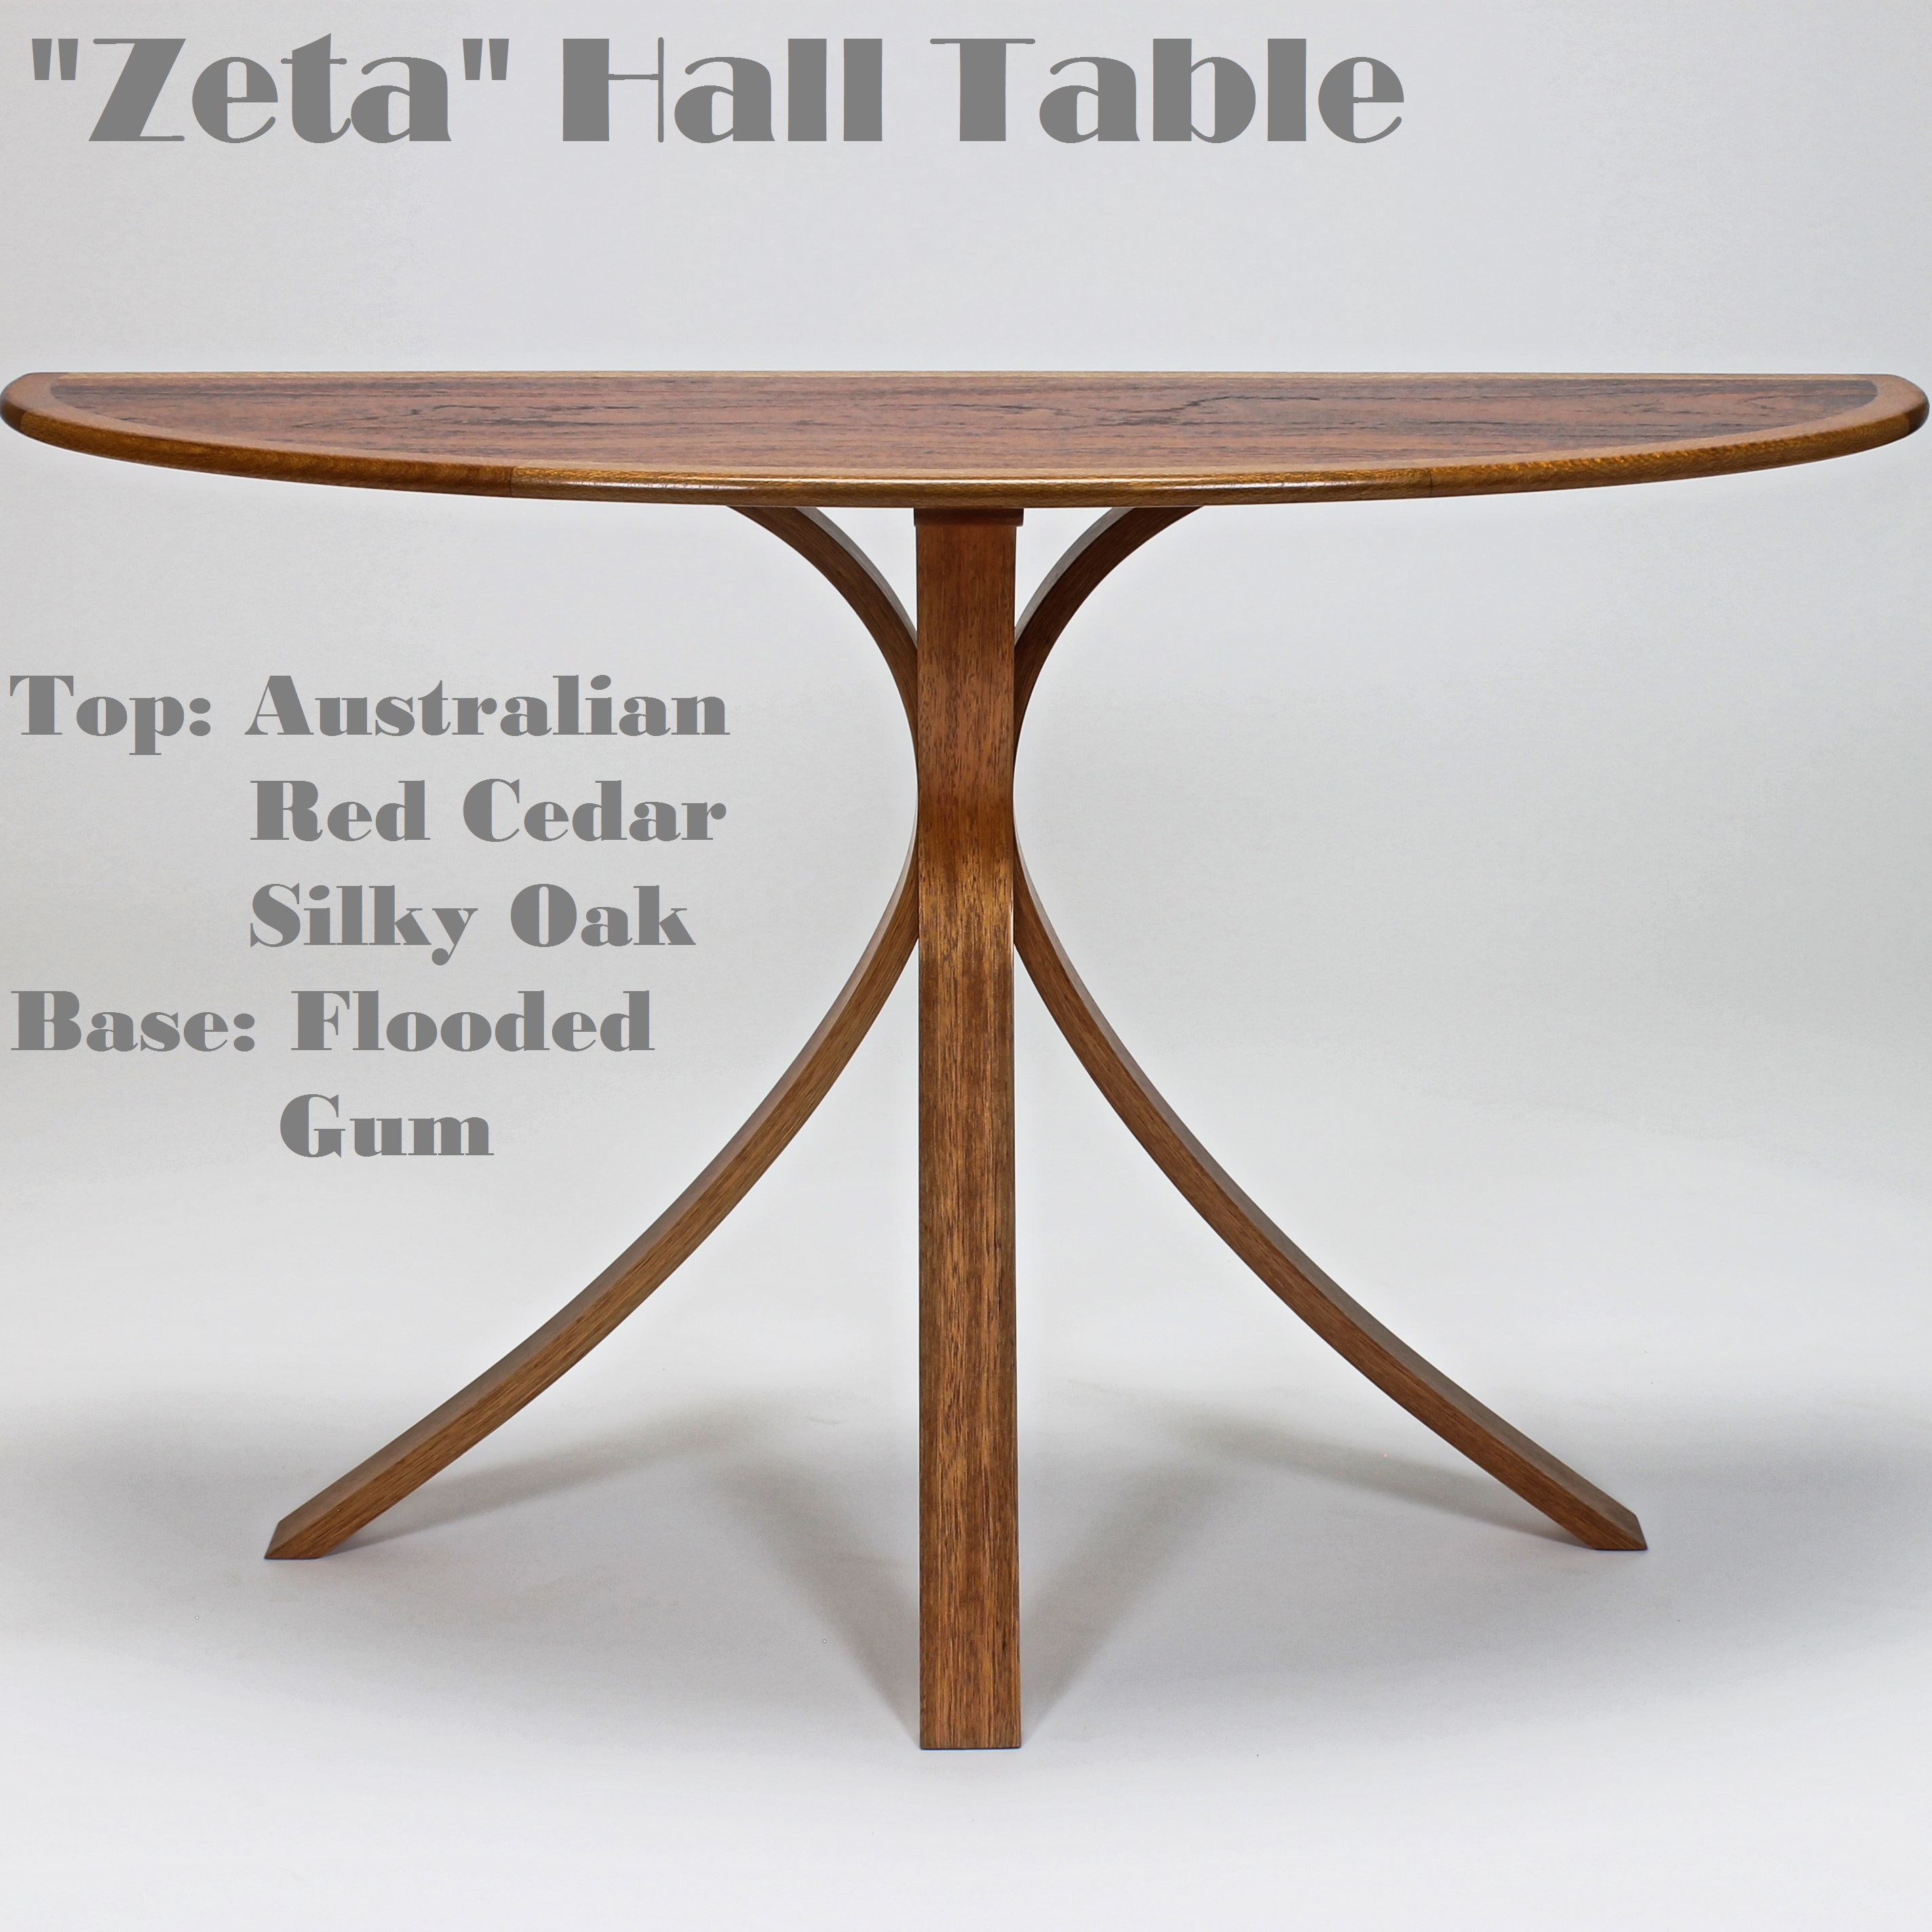 Zeta Hall Table Website 2